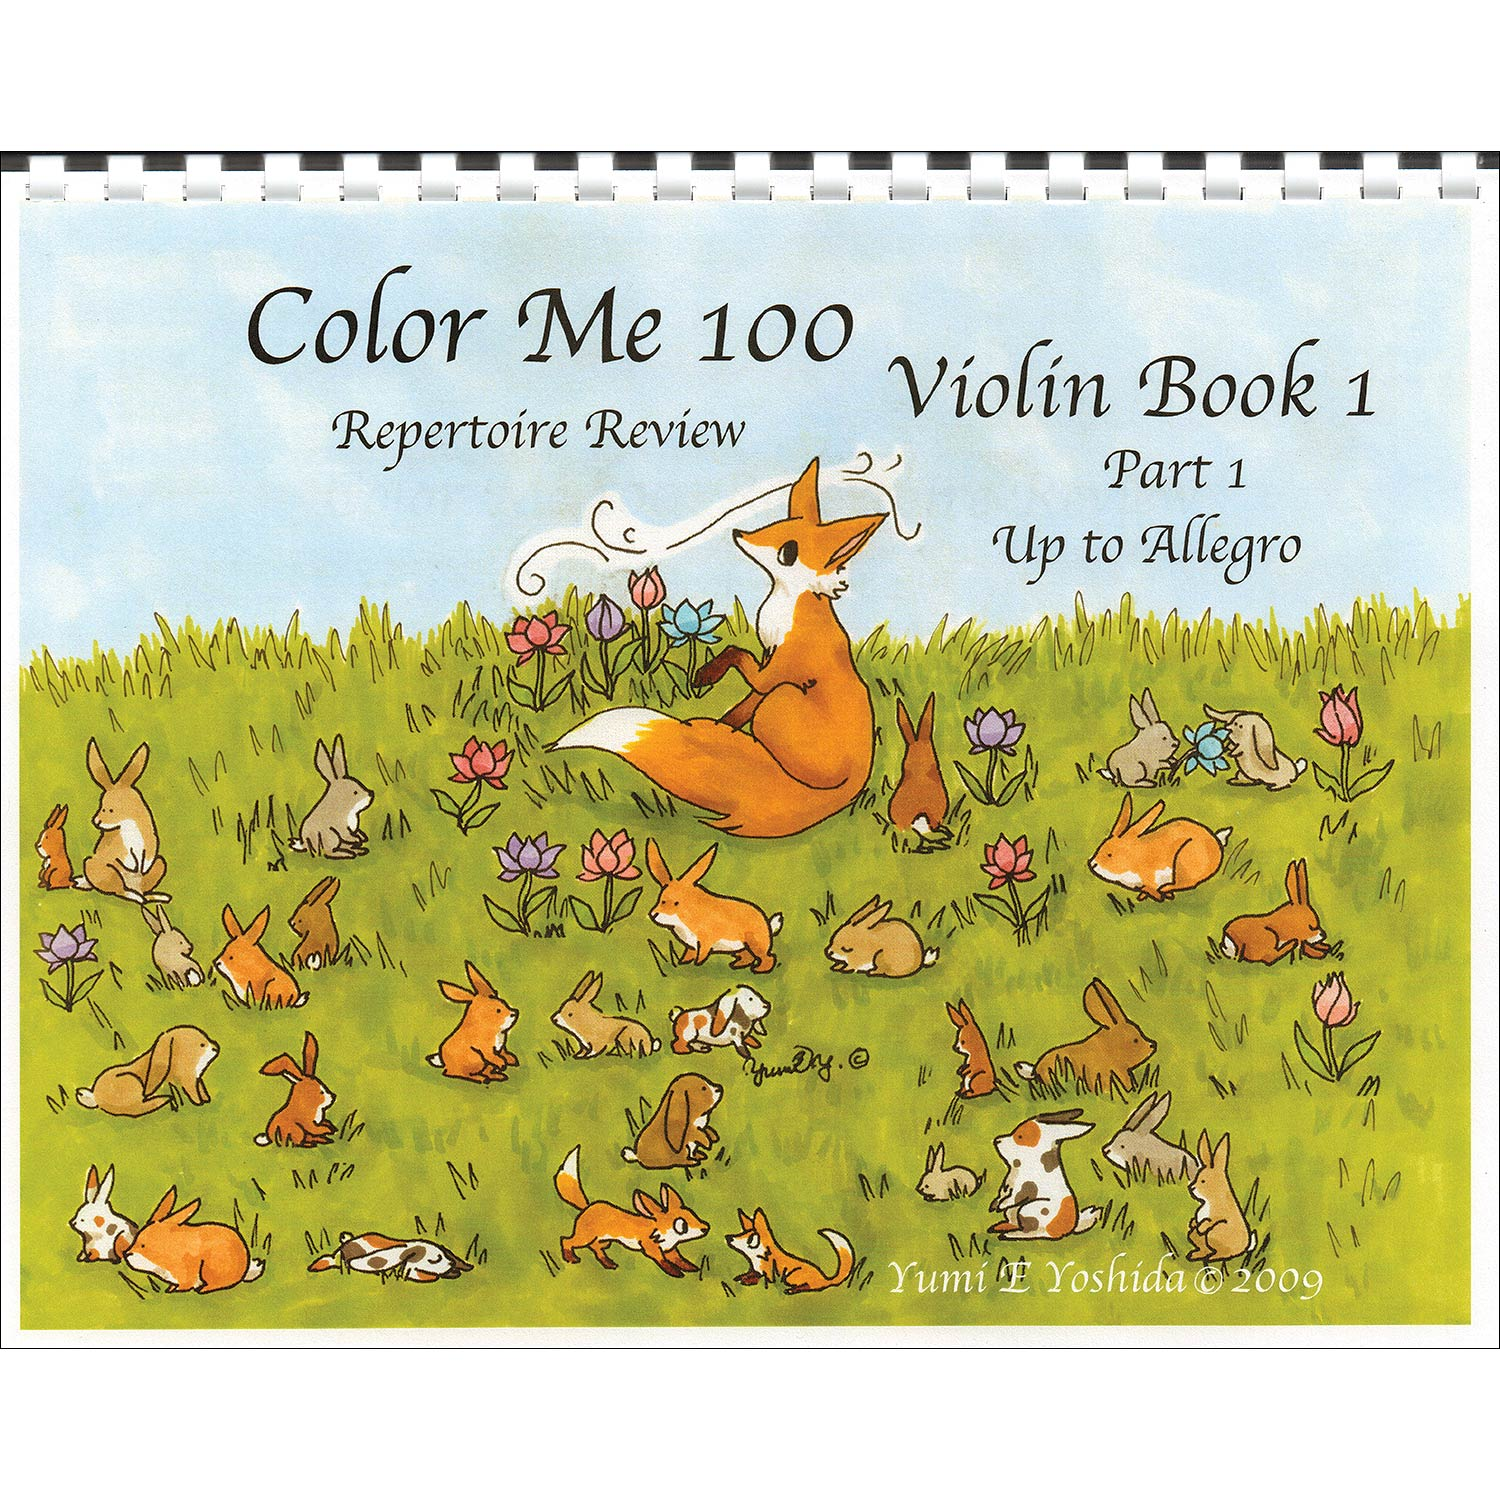 Color Me 100, Violin Book 1, Part 1 | Johnson String Instrument